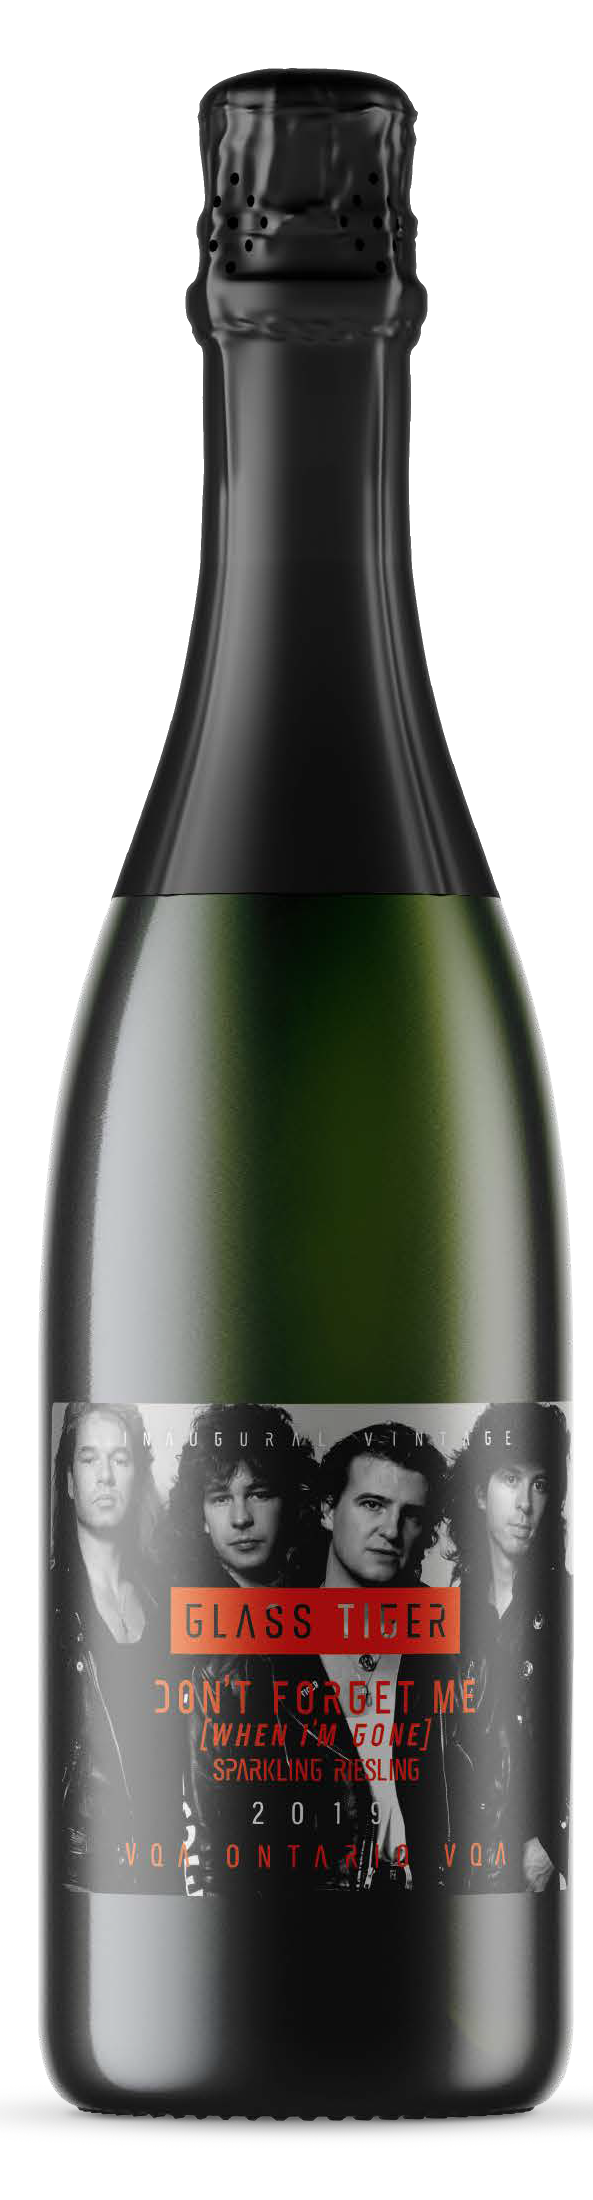 2019 Glass Tiger Sparkling Riesling